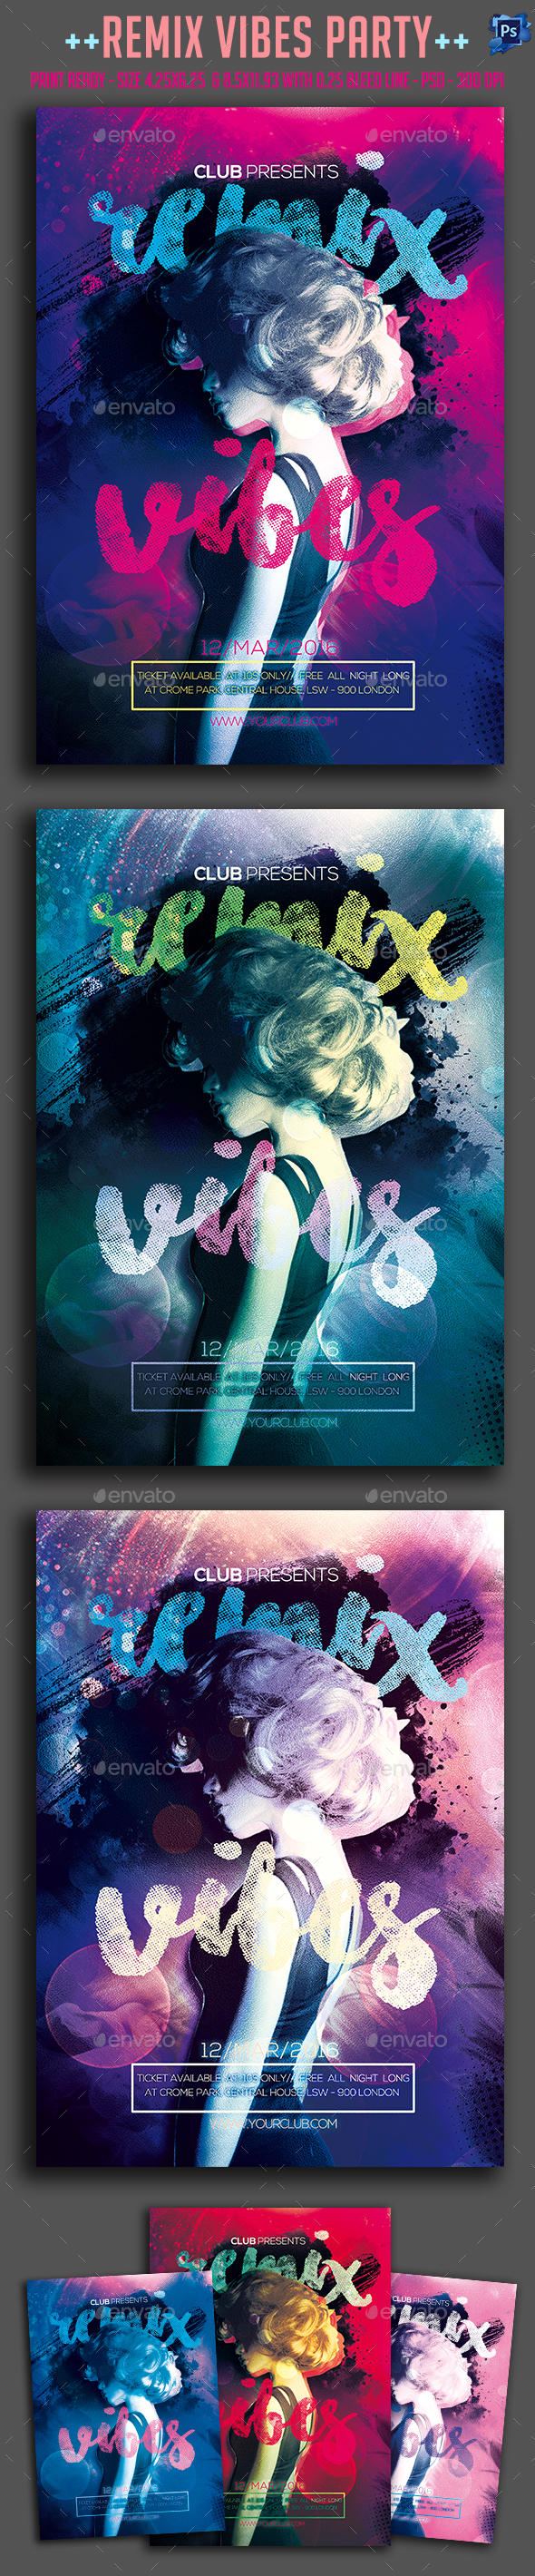 Remix Vibes Party Flyer - Clubs & Parties Events